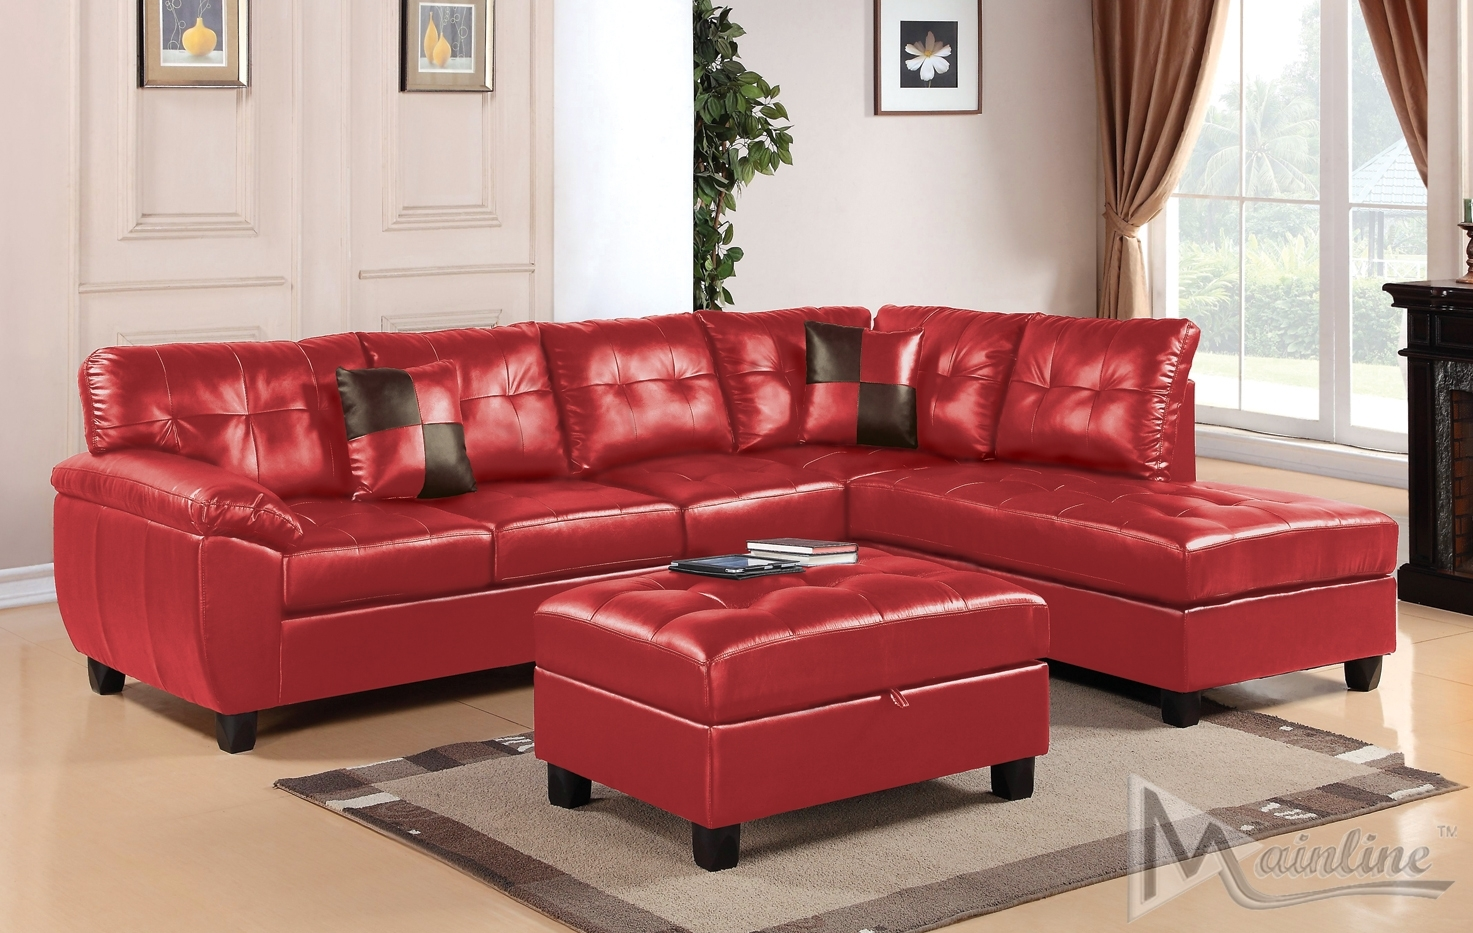 Charming Luxury Sectional Sofas Dallas 92 For Your Sleeper Chairs And Sofas Intended  For Dallas Sectional Sofas